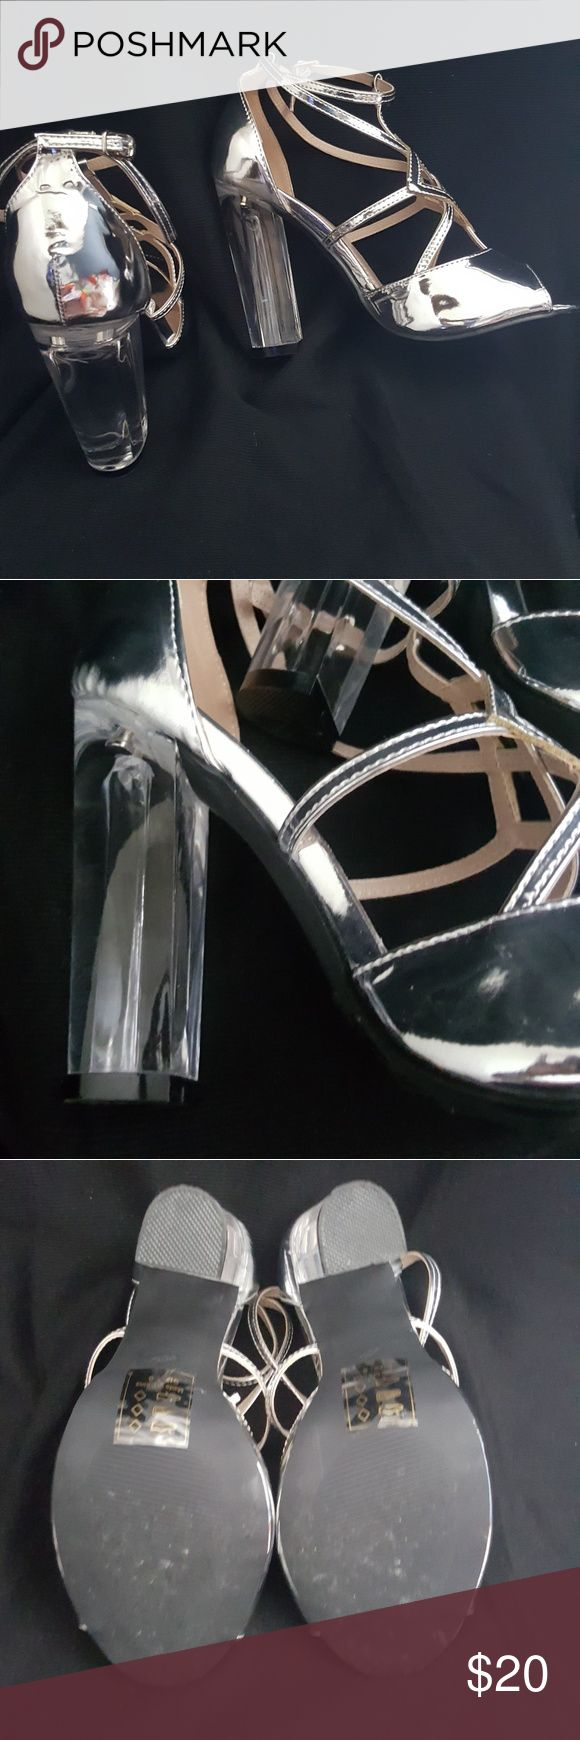 Shoe Silver Strappy Sandal Patent Glossy turn and lock ankle strap. 4 1/2 inch stiletto and low 1/2 inch platform manmade upper Shoe Republic LA Shoes Heels